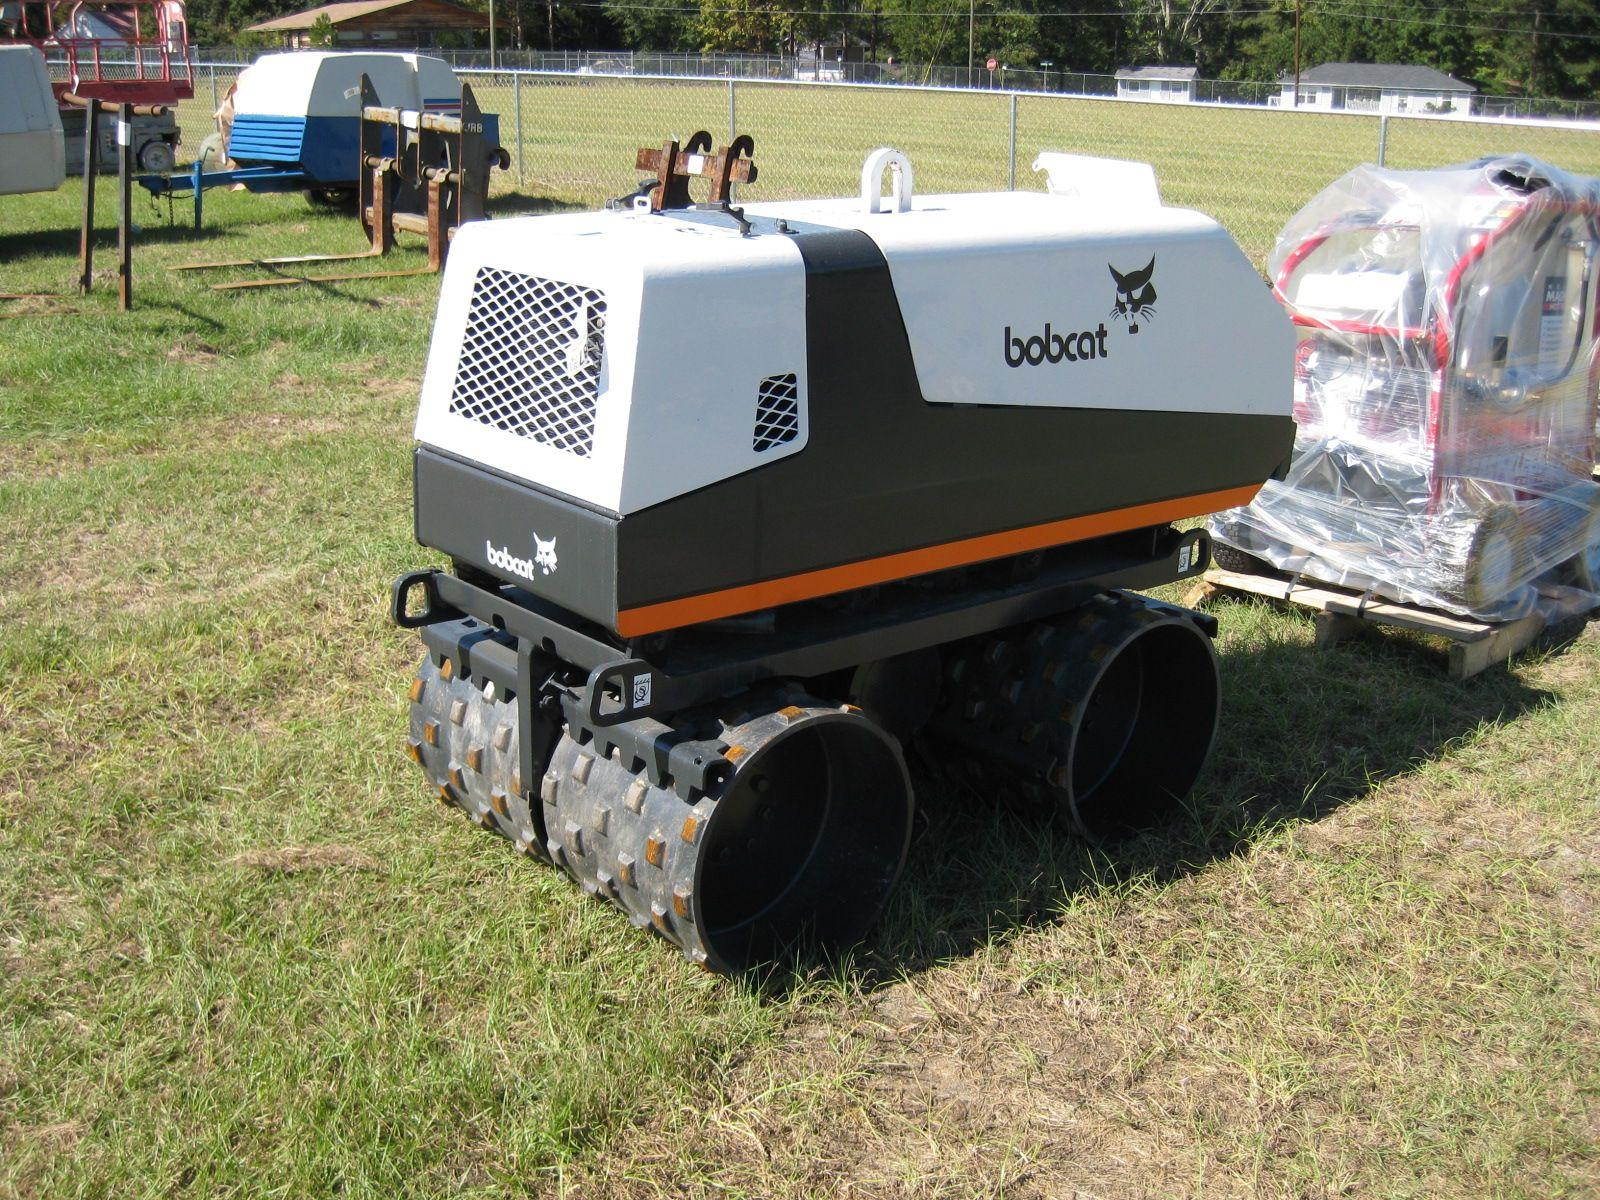 Image 1 : BOBCAT/INGERSOLL-RAND BCT-13 TRENCH COMPACTOR S/N